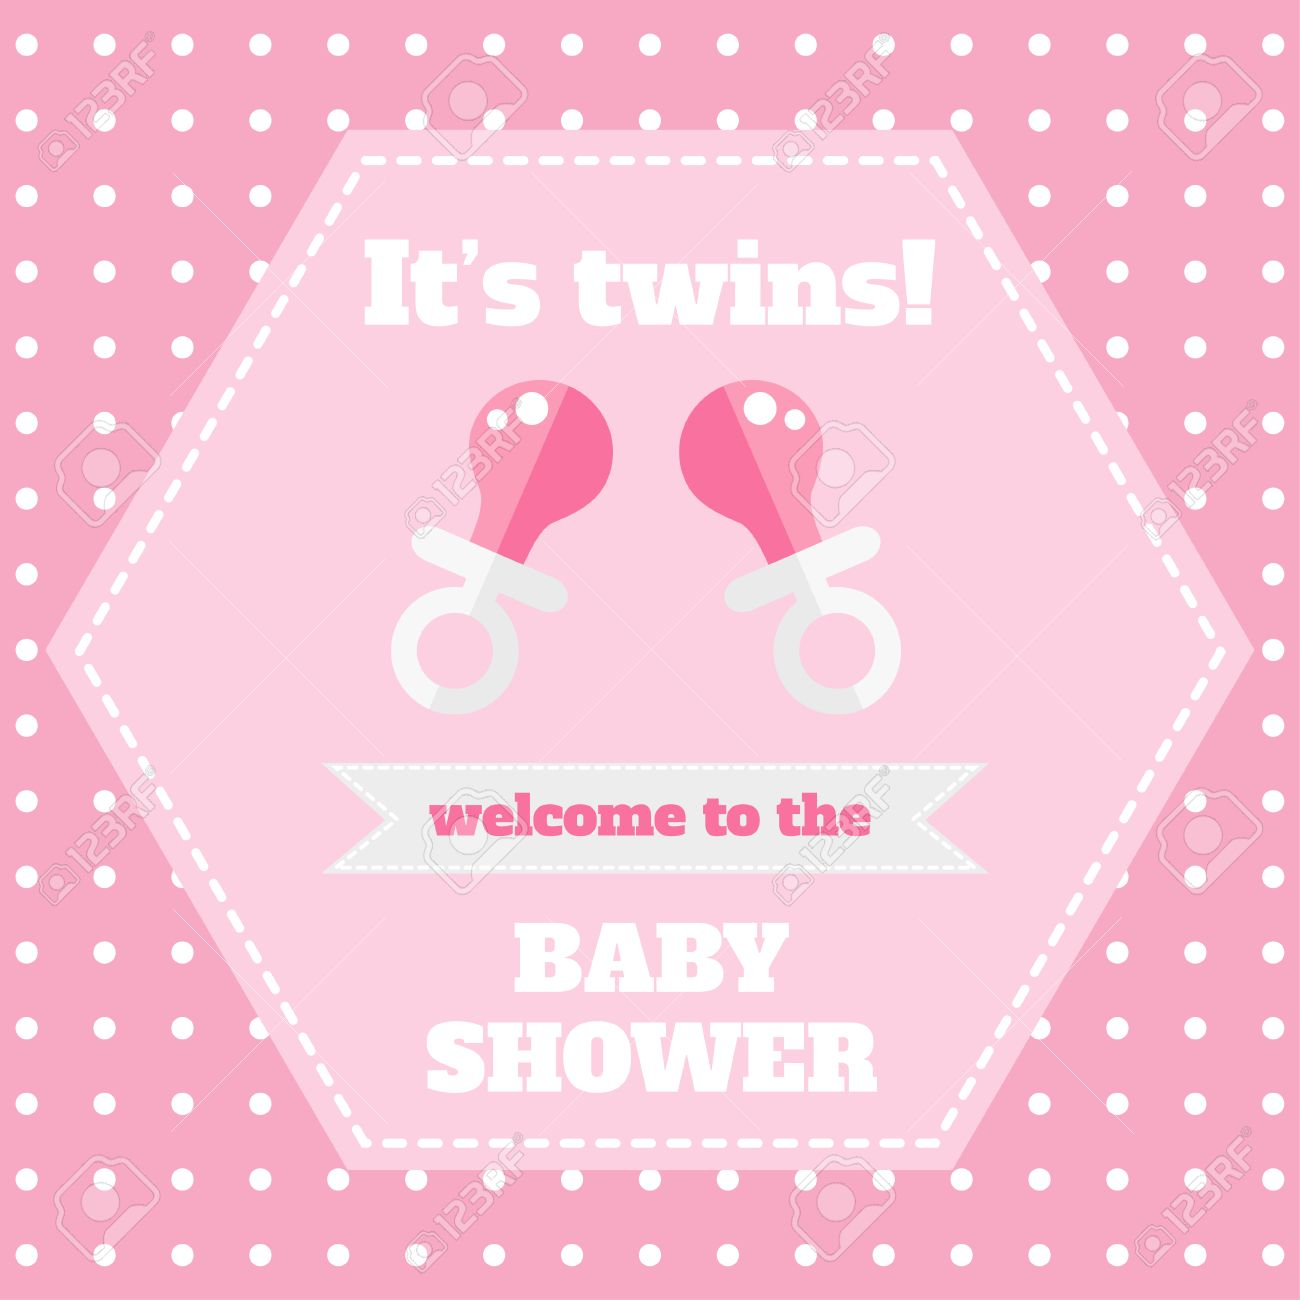 Baby Card Design Template Baby Shower Card Welcome Baby Card Royalty Free Cliparts Vectors And Stock Illustration Image 64401527